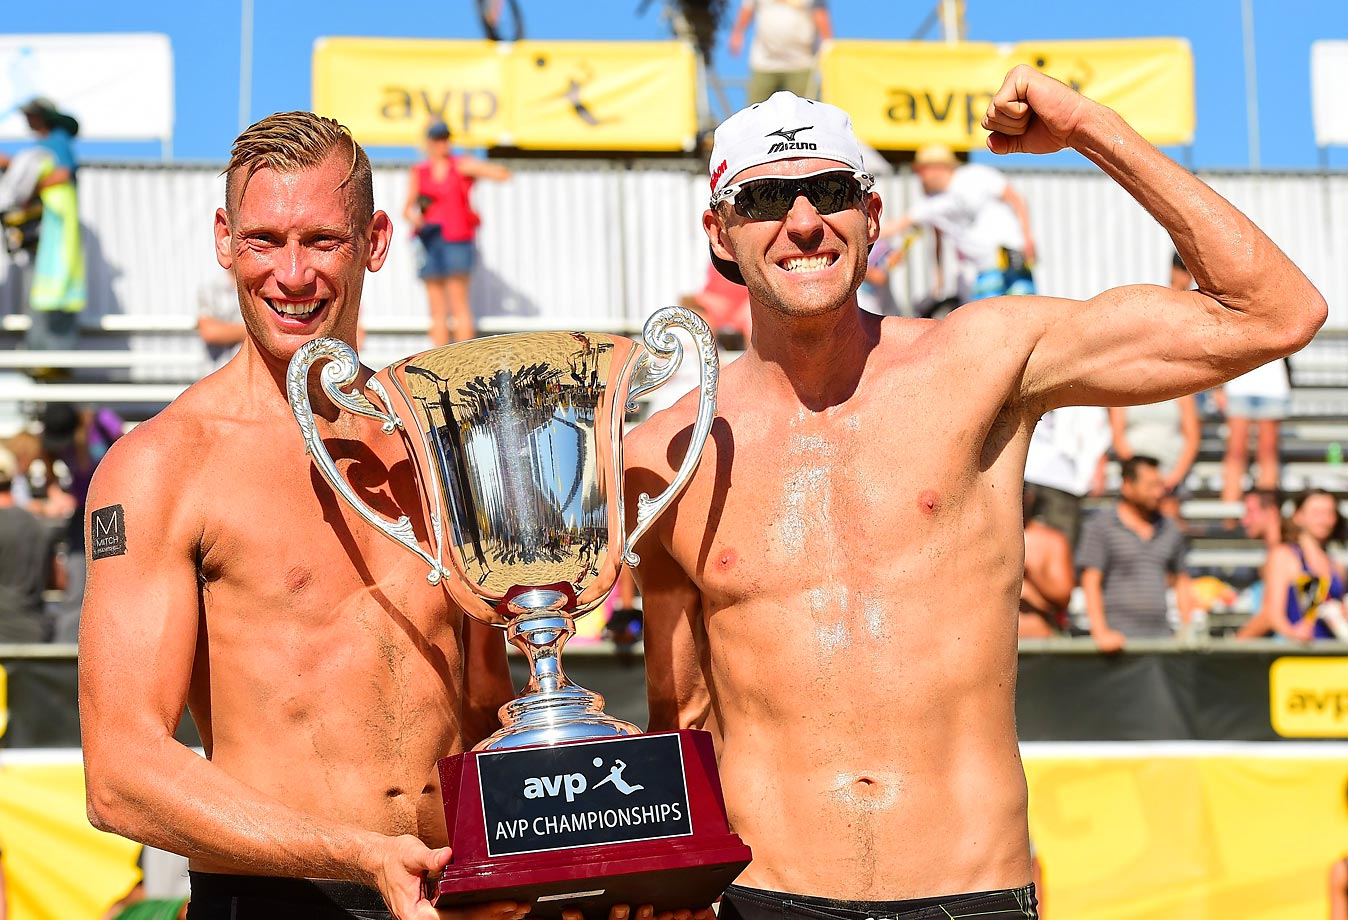 Casey Patterson (left) and Jake Gibb hoisting won their fourth AVP tournament of the year.